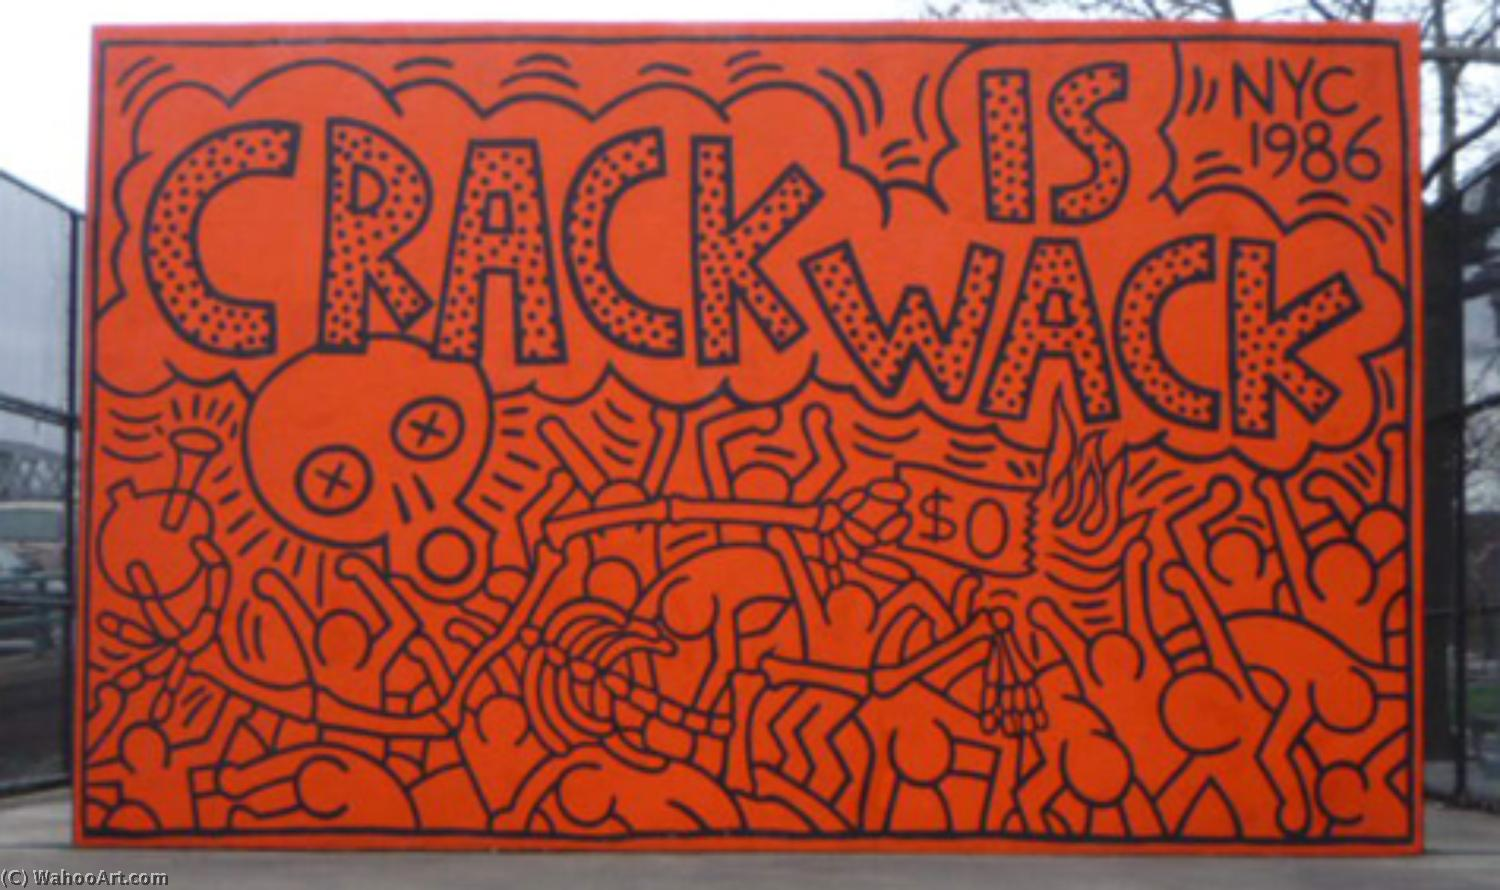 famous painting Crack is wack of Keith Haring